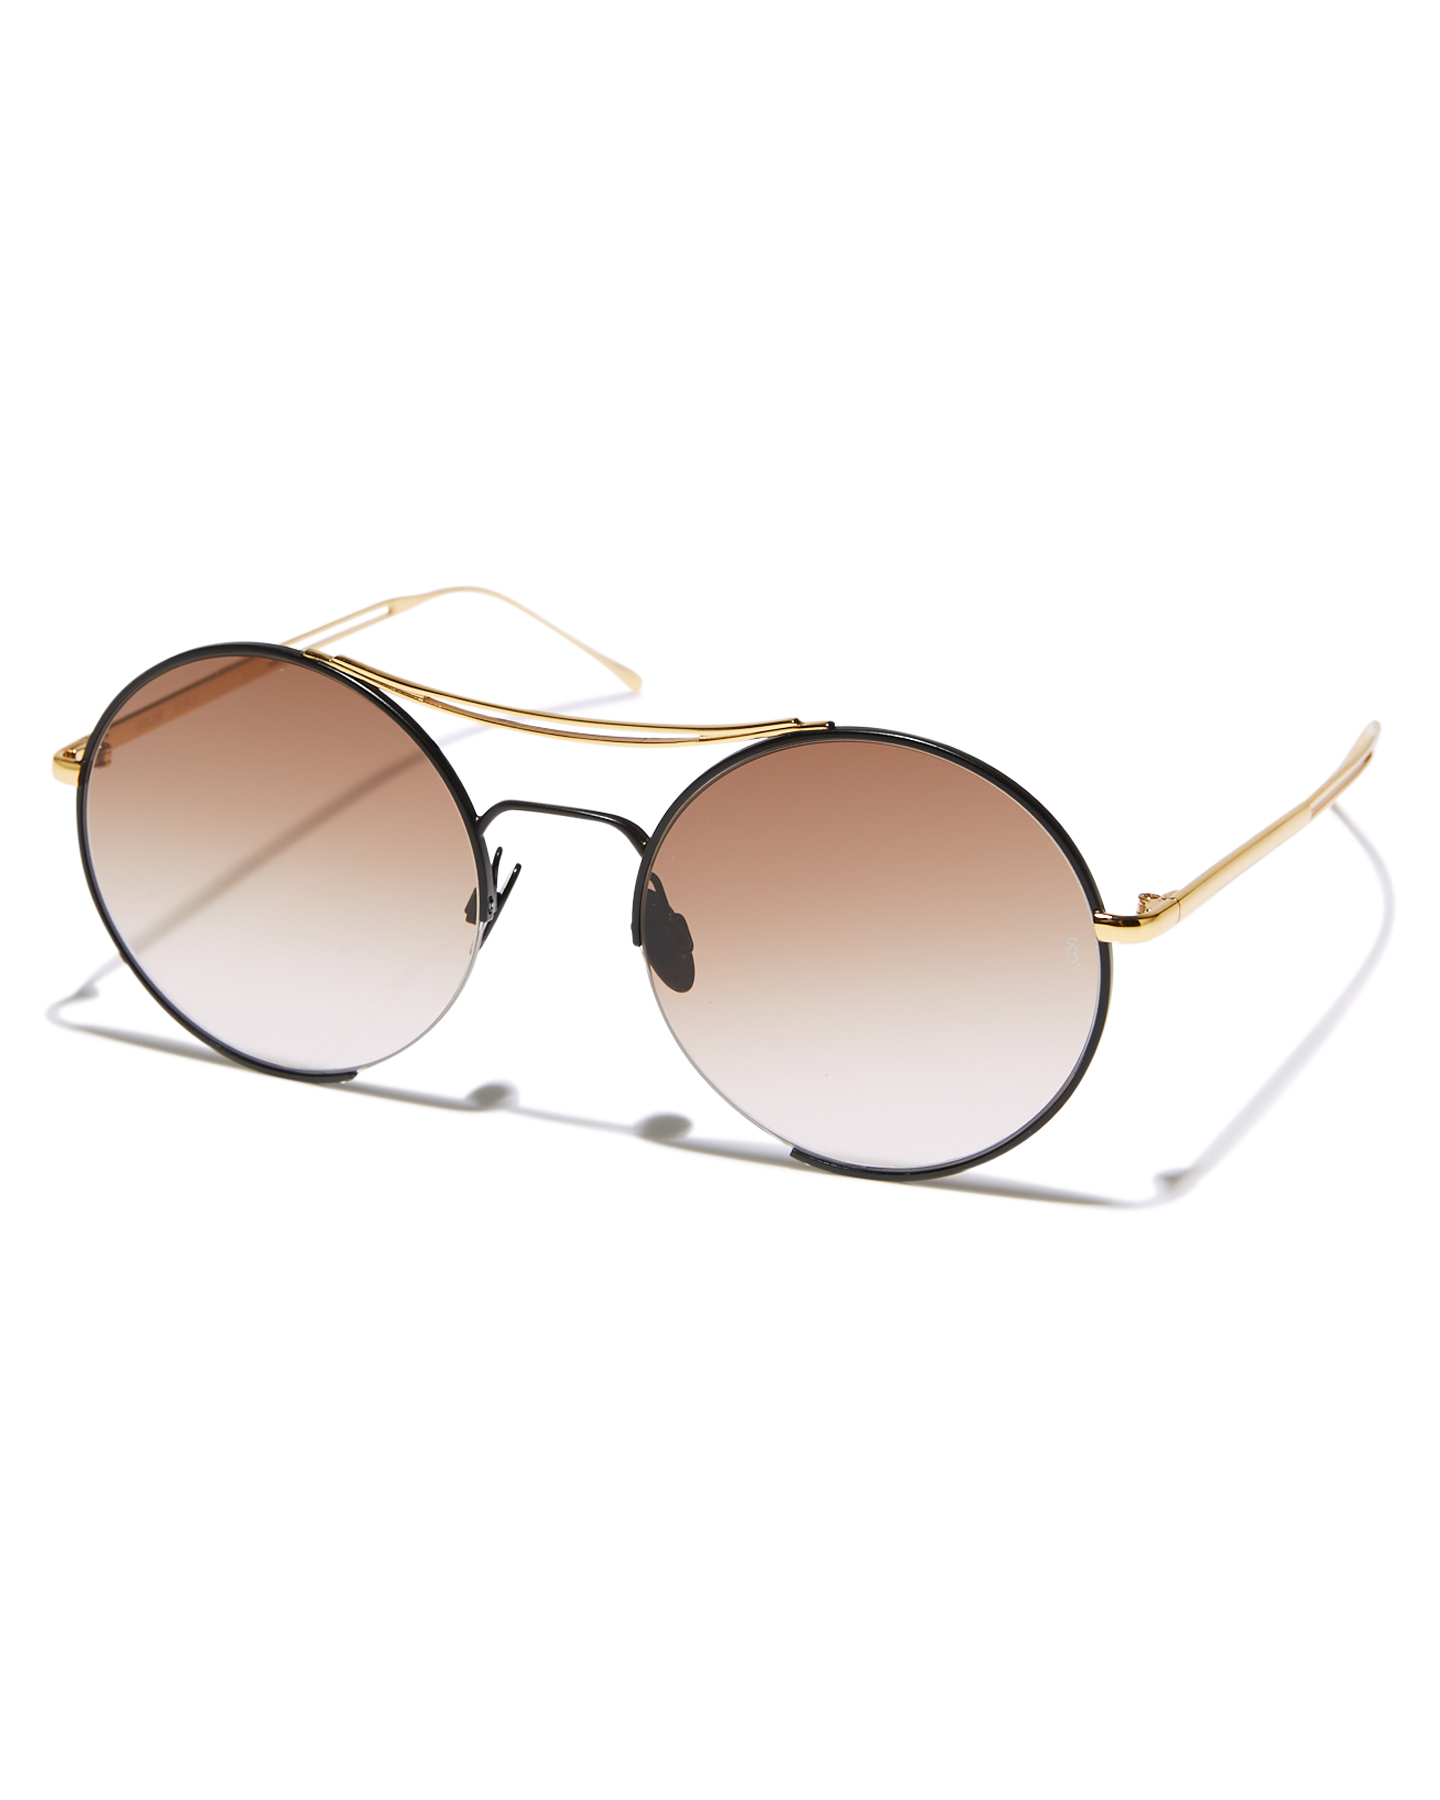 fb79907ad98 Sunday Somewhere Goldie Sunglasses - Black